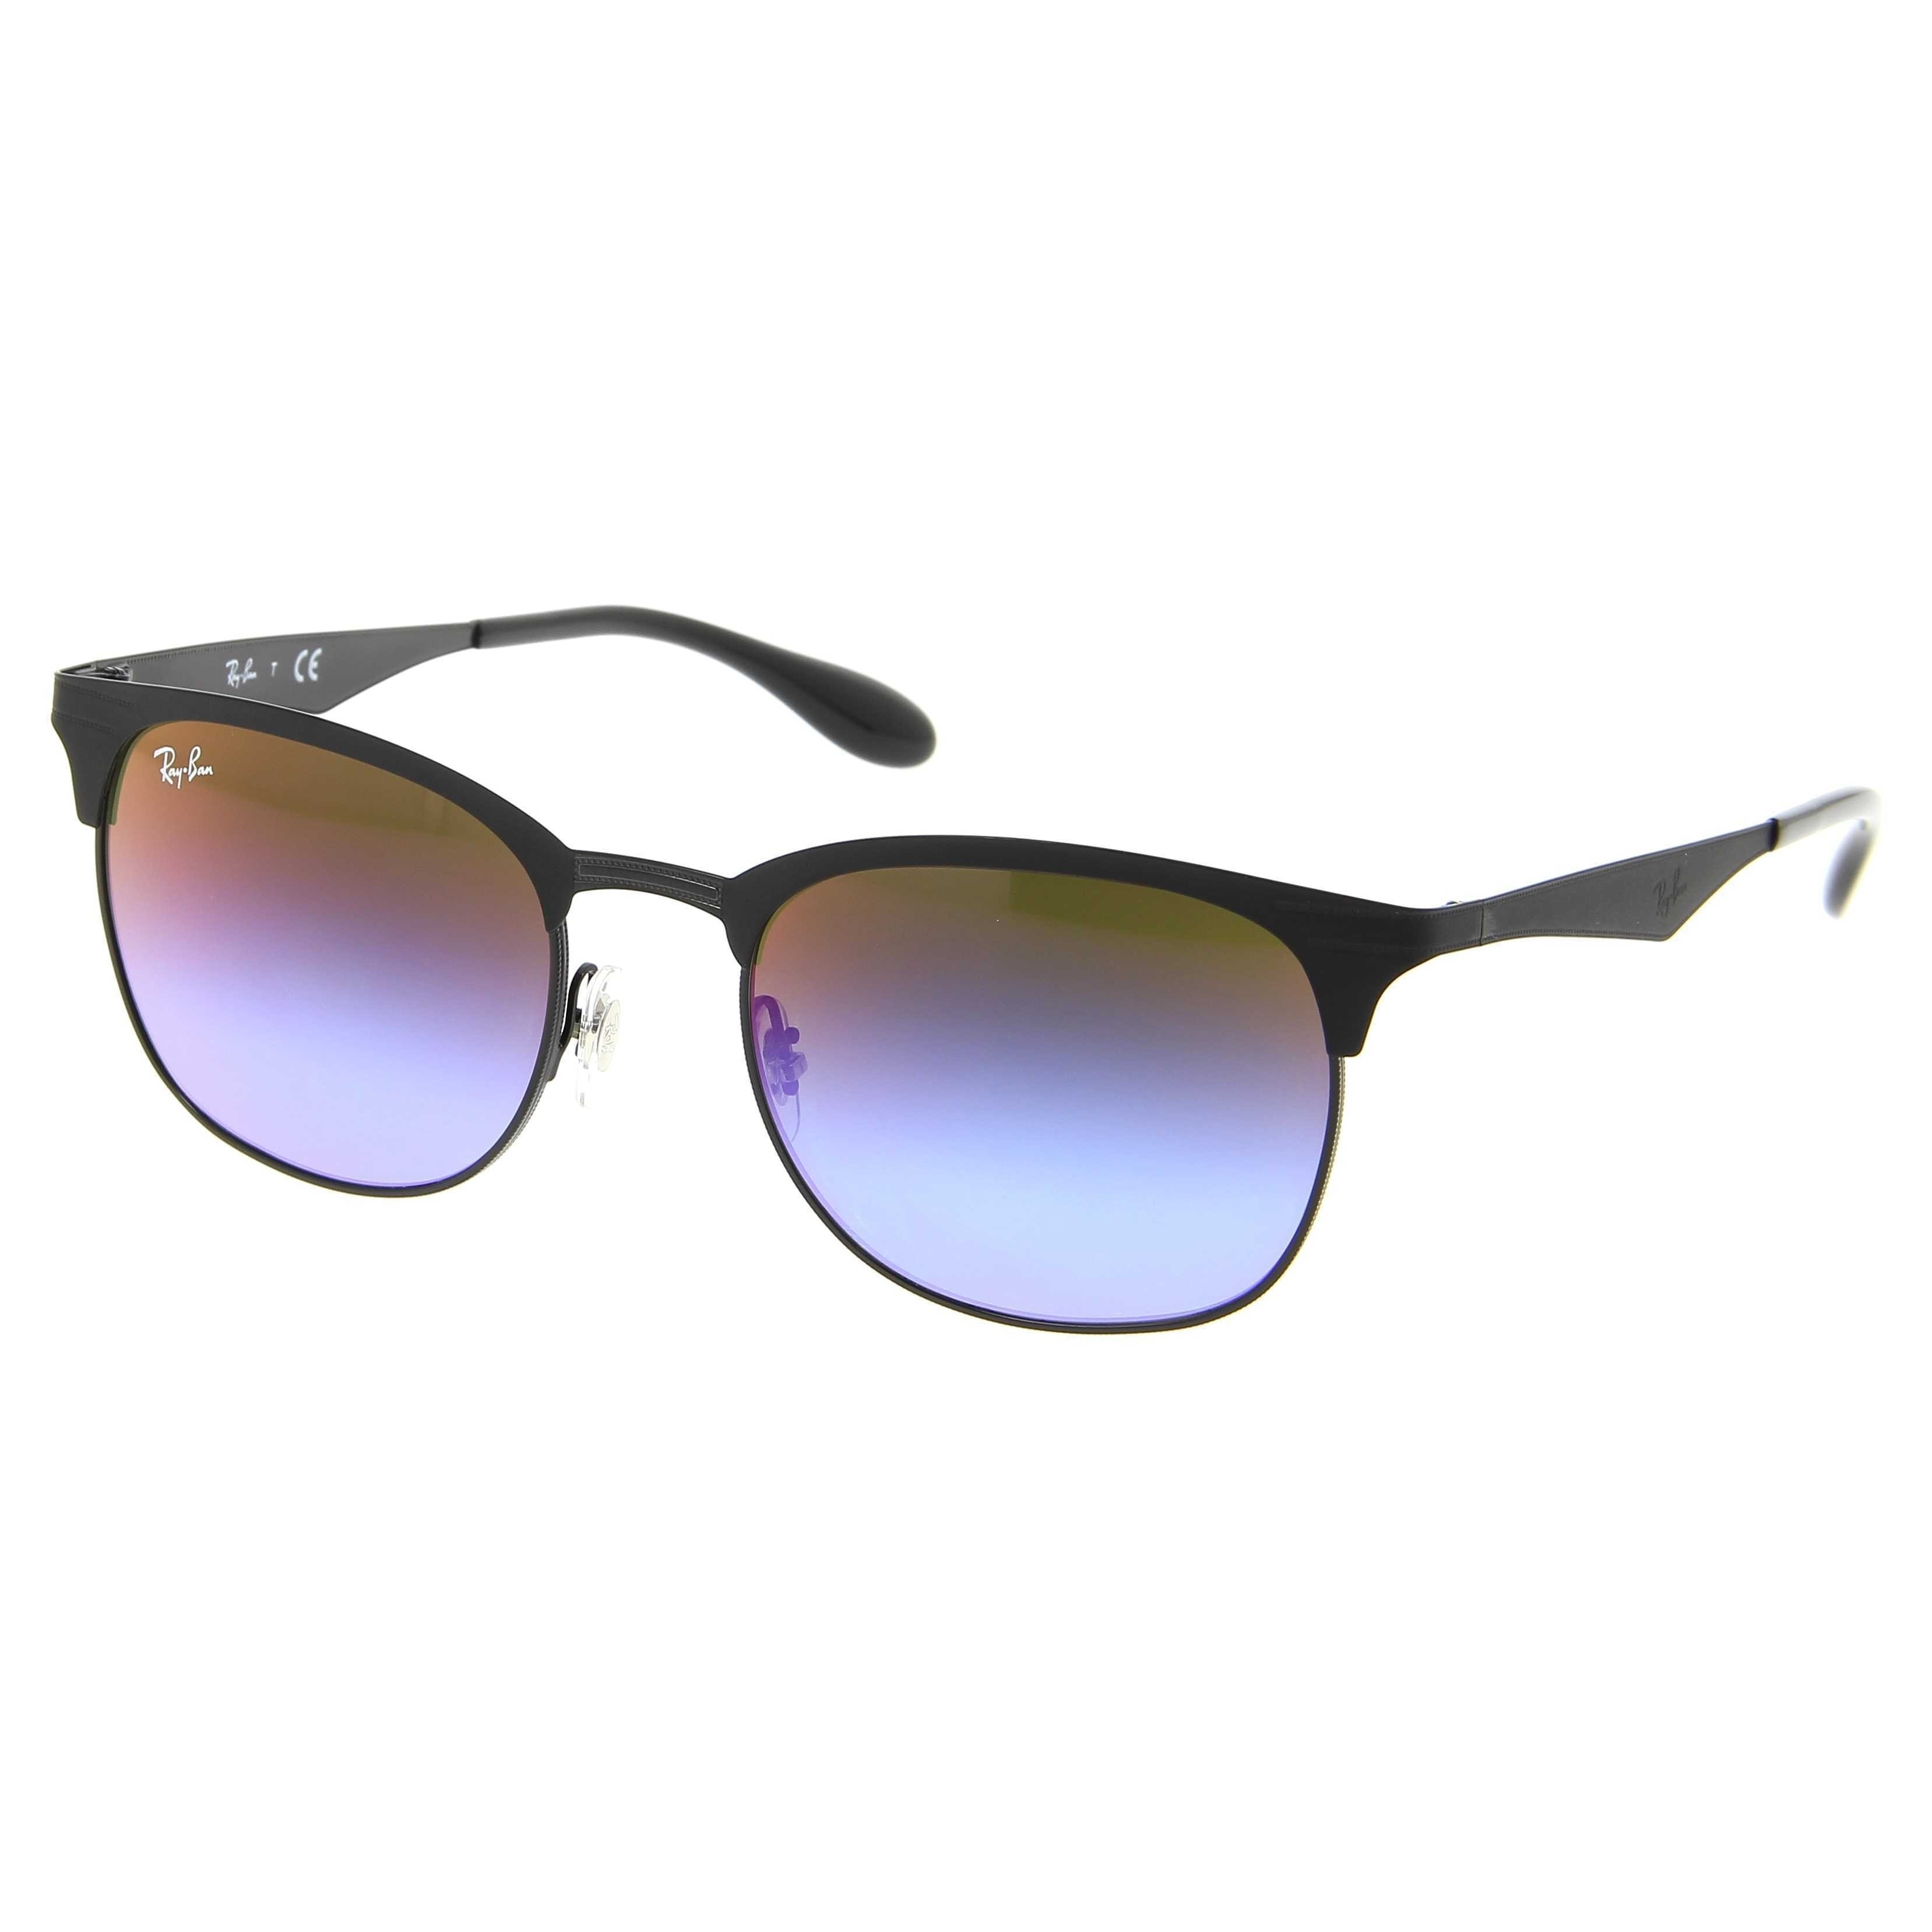 464f8ed6f5 Shop Ray-Ban Men s RB3538 186 B1 Black Frame Blue Violet Gradient Mirror 53  mm Lens Sunglasses - Free Shipping Today - Overstock - 16741057